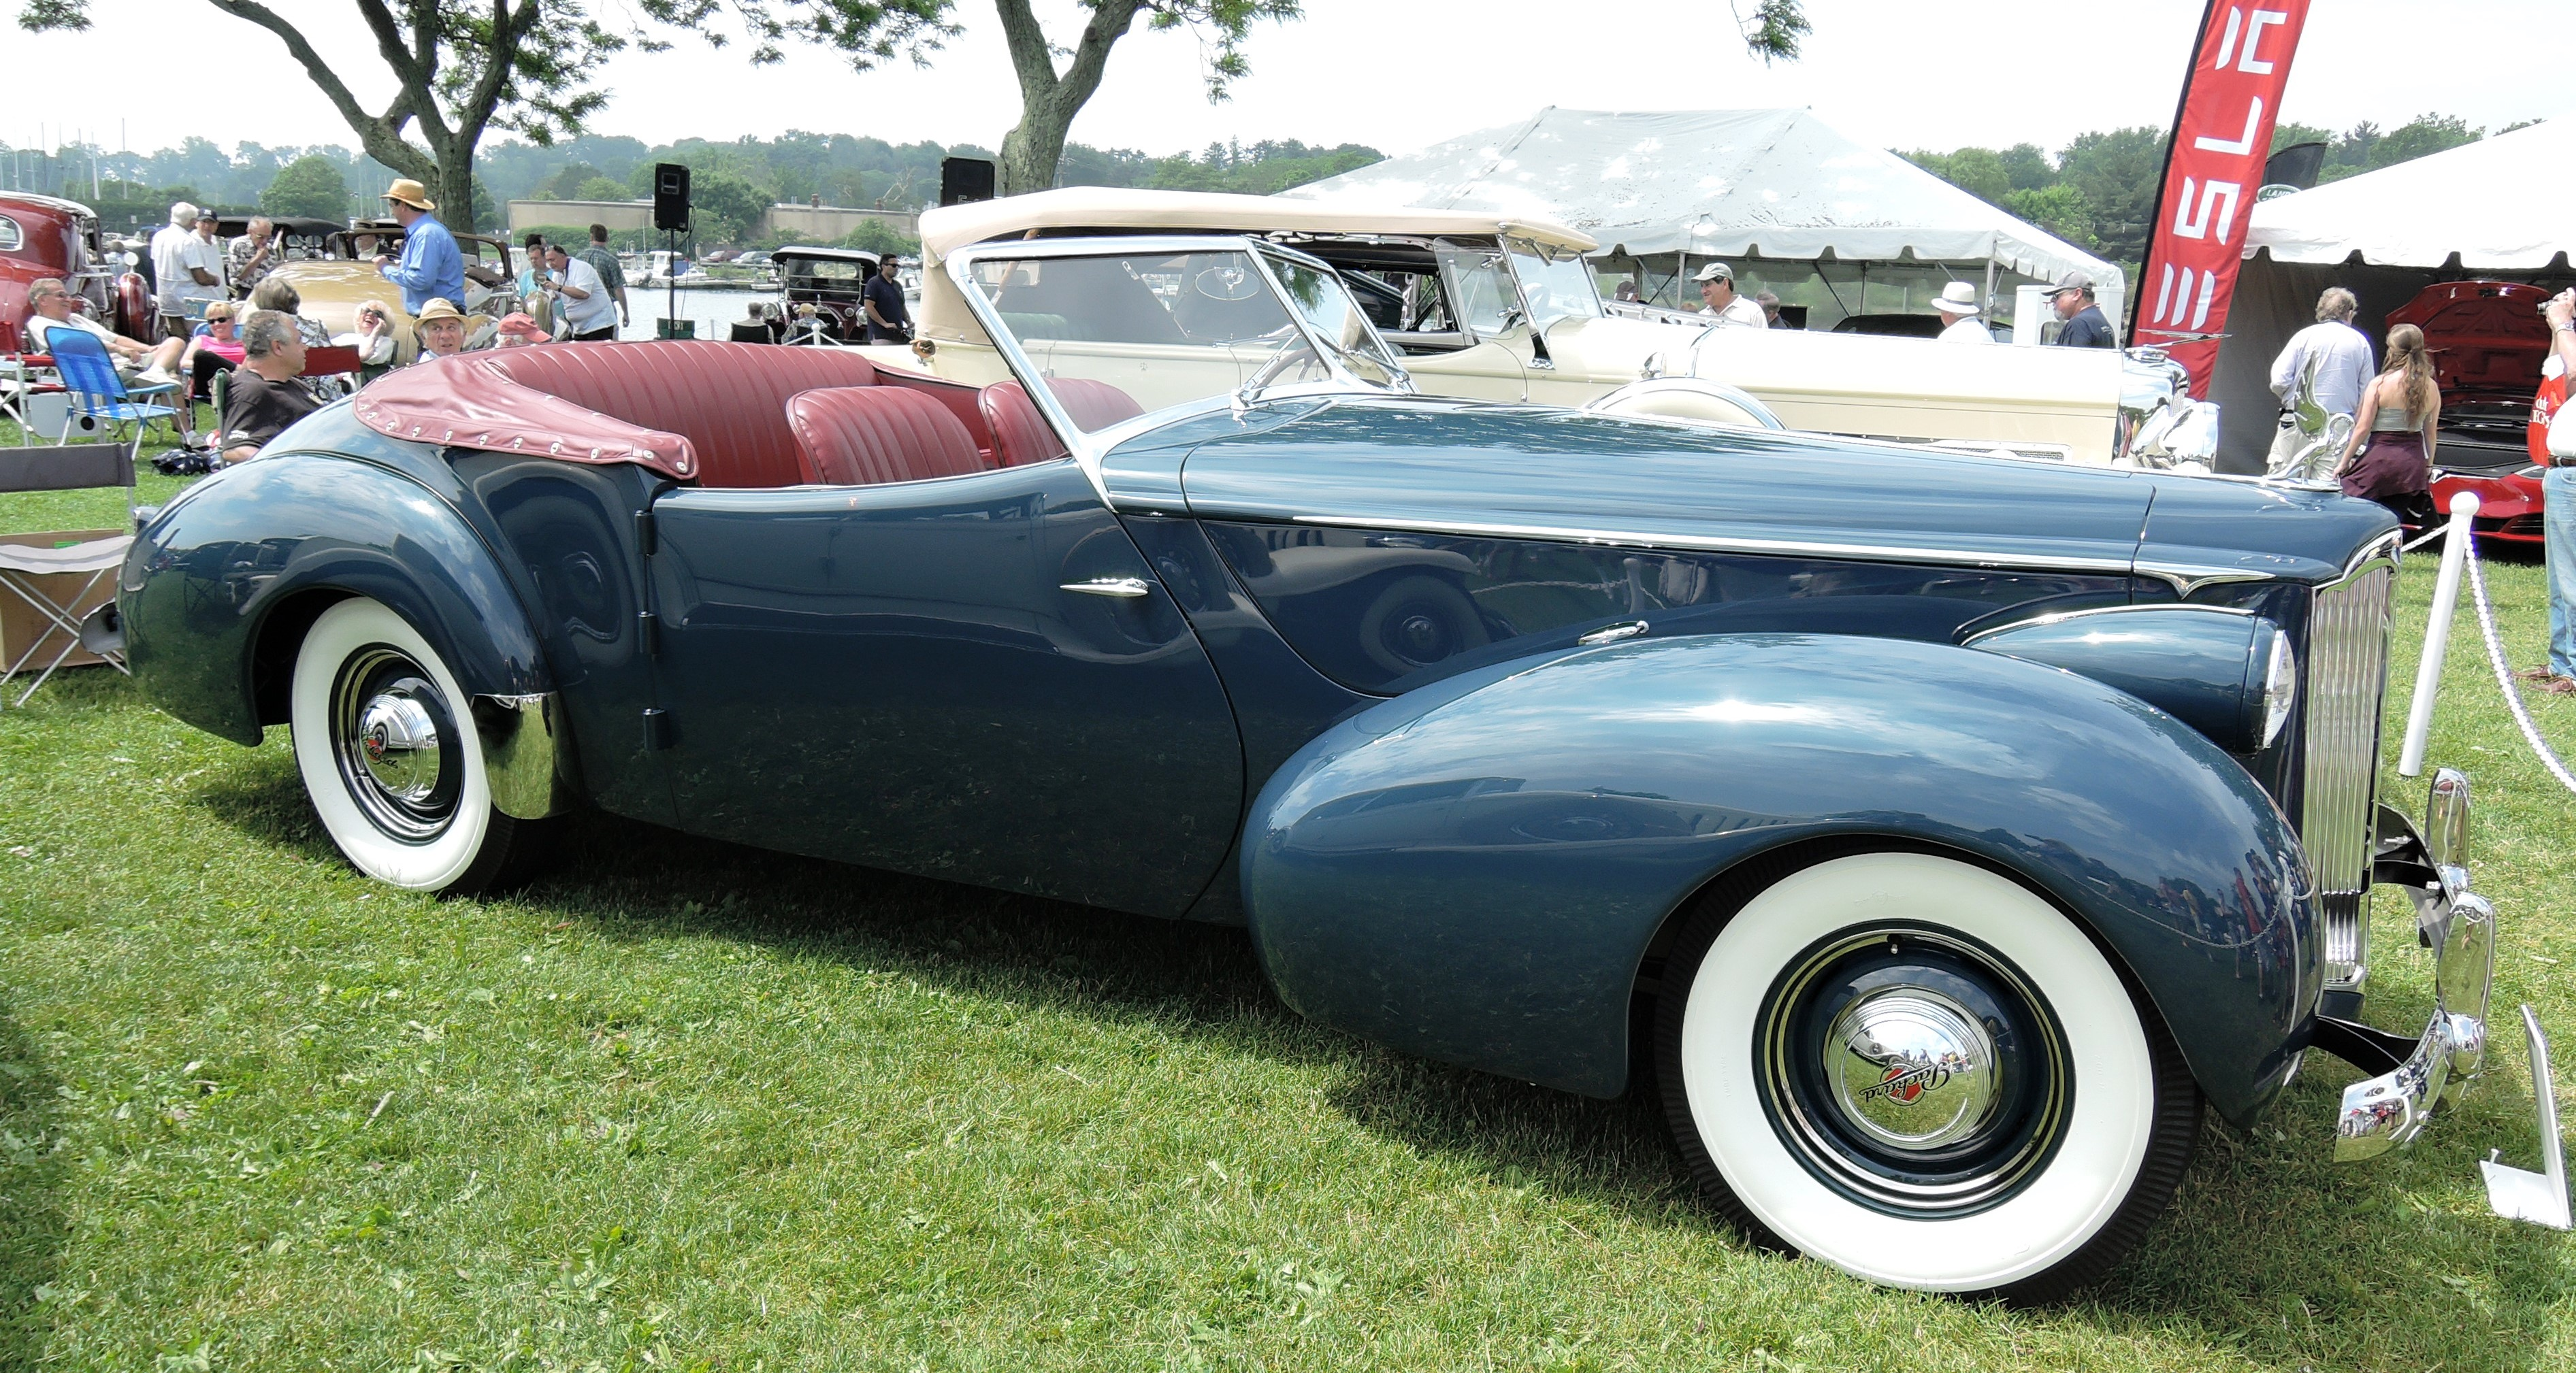 blue/red 1940 Packard Darrin Super Eight Victoria Convertible - greenwich concours